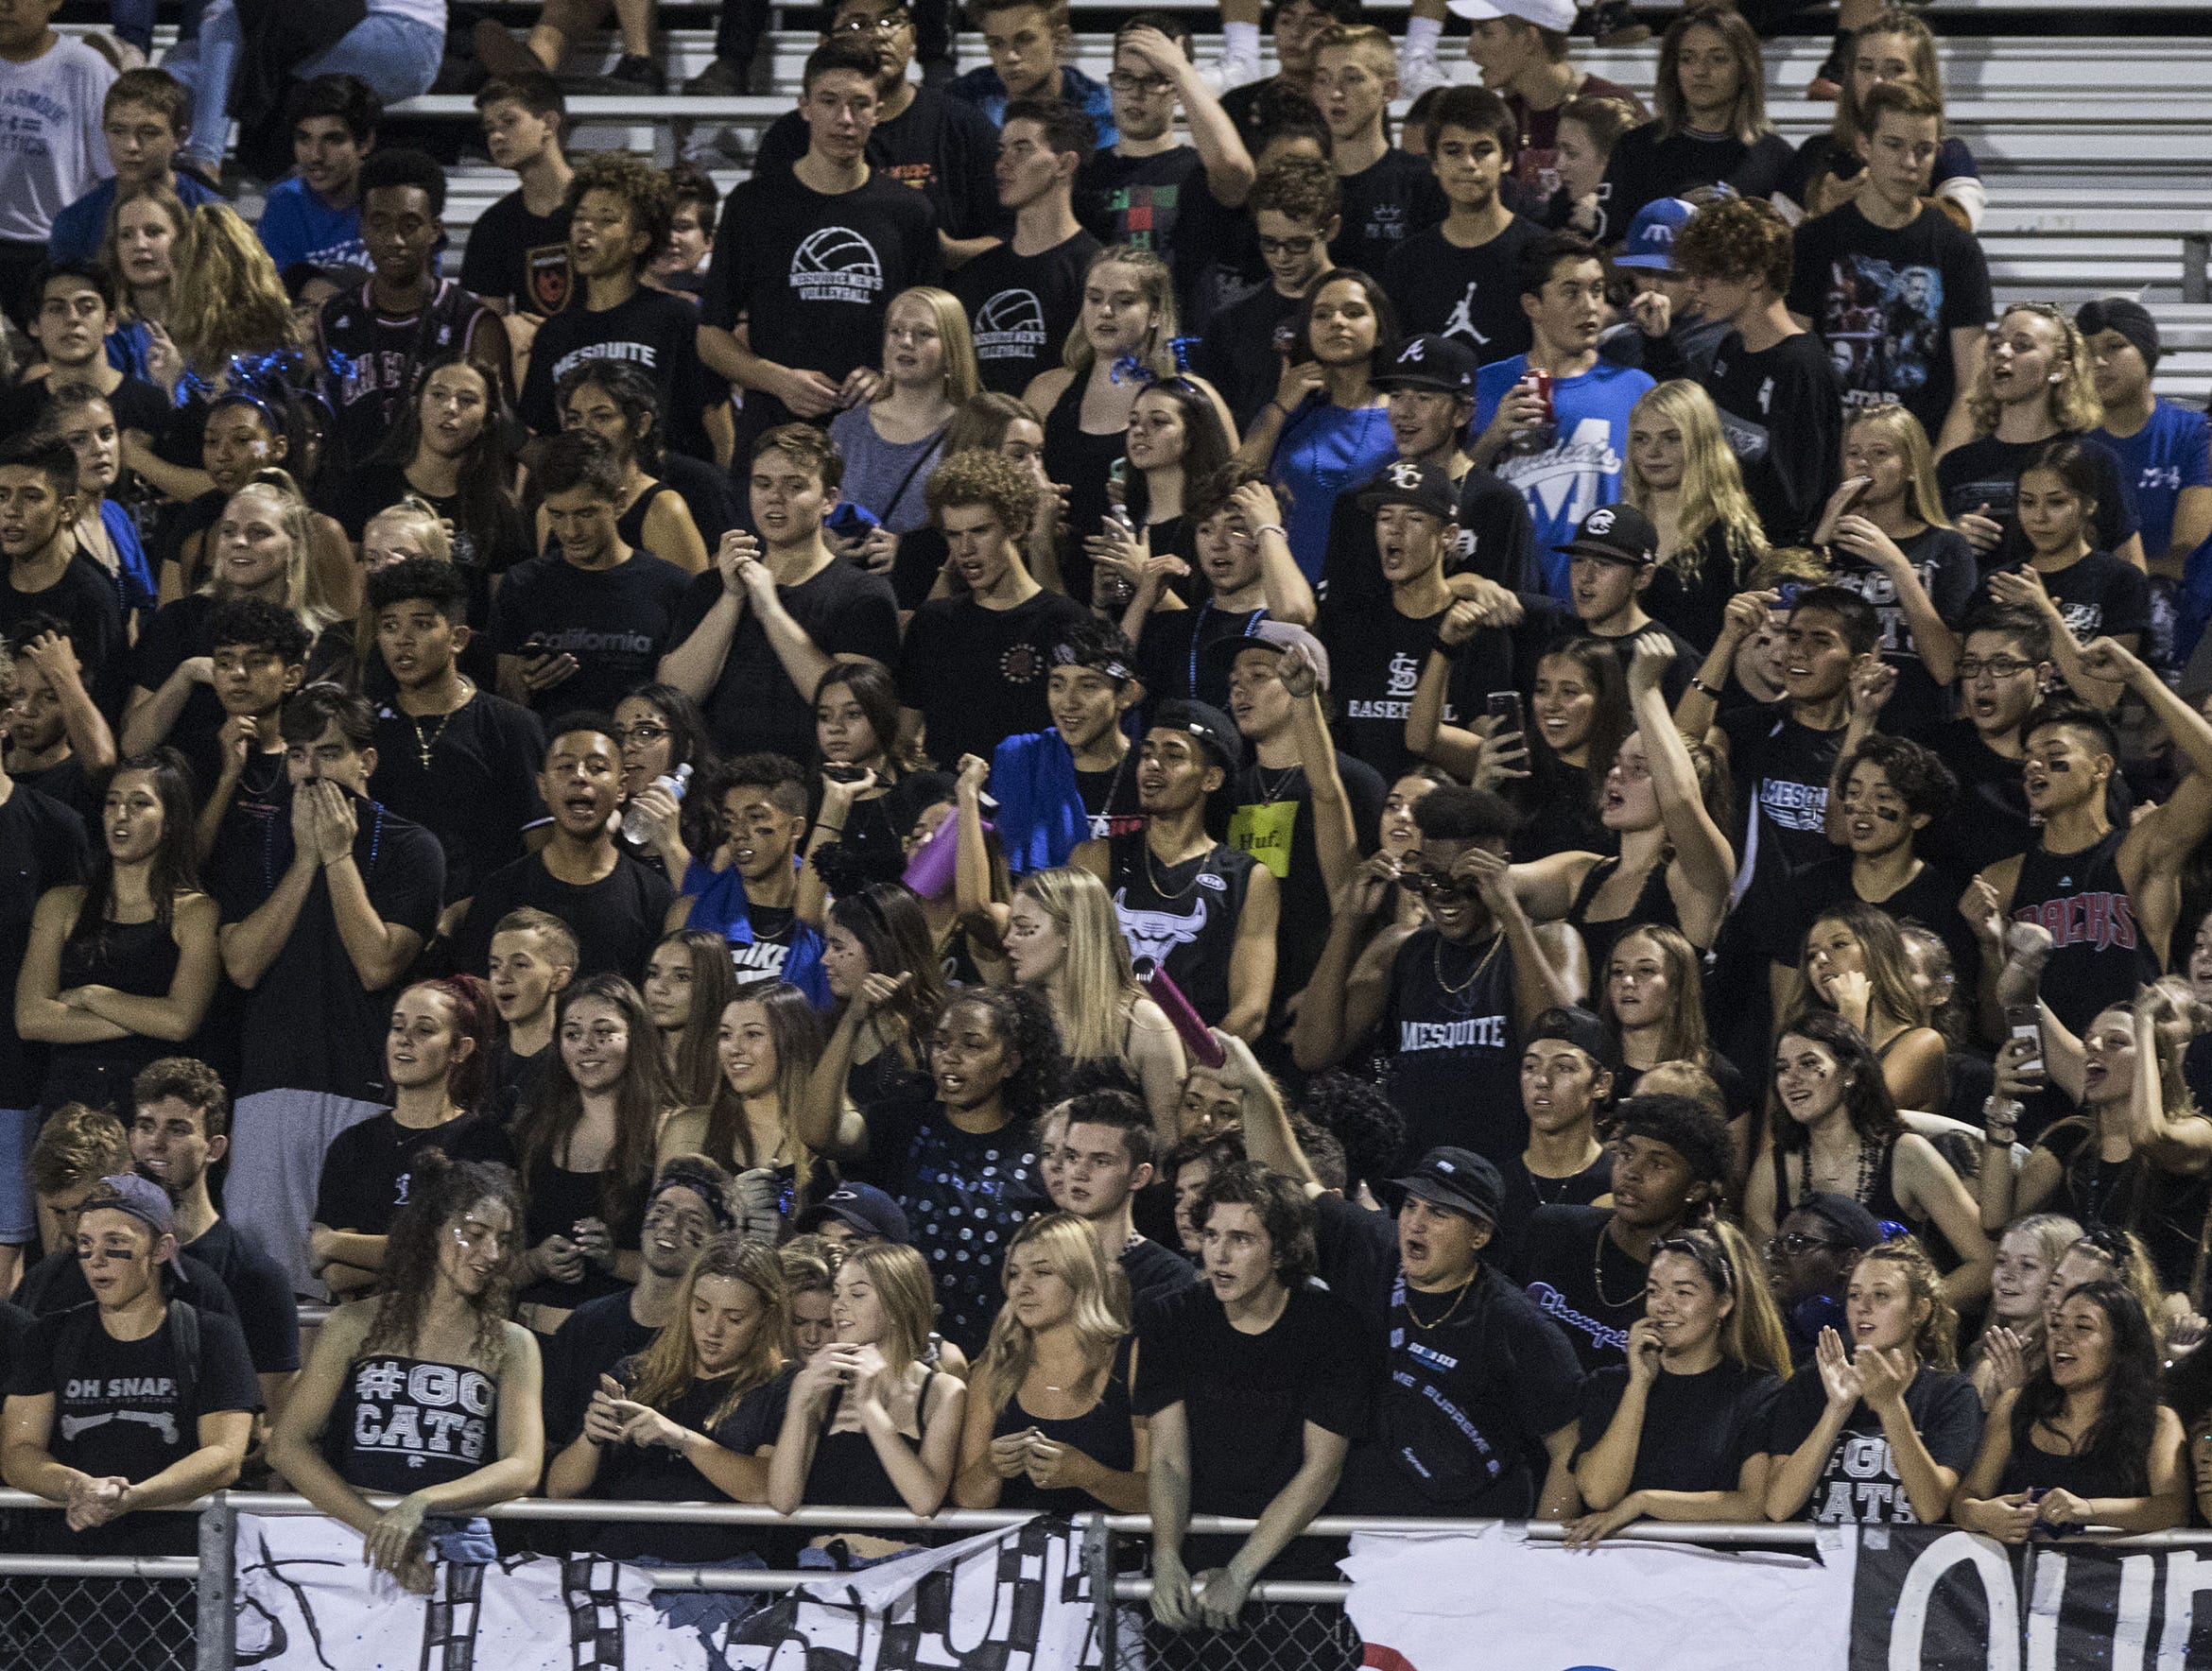 Mesquite's student body cheer on their Wildcats during their game against Seton in Gilbert Friday, Sept. 21, 2018. #azhsfb